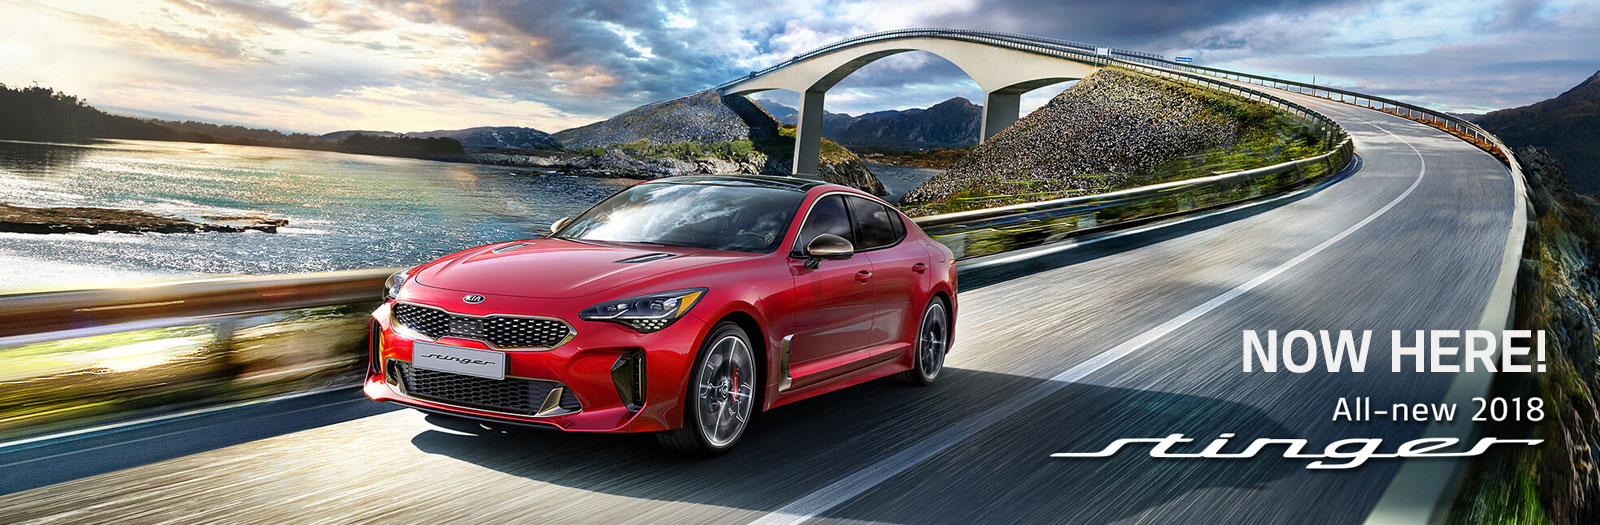 2018 Stinger Performance Kia